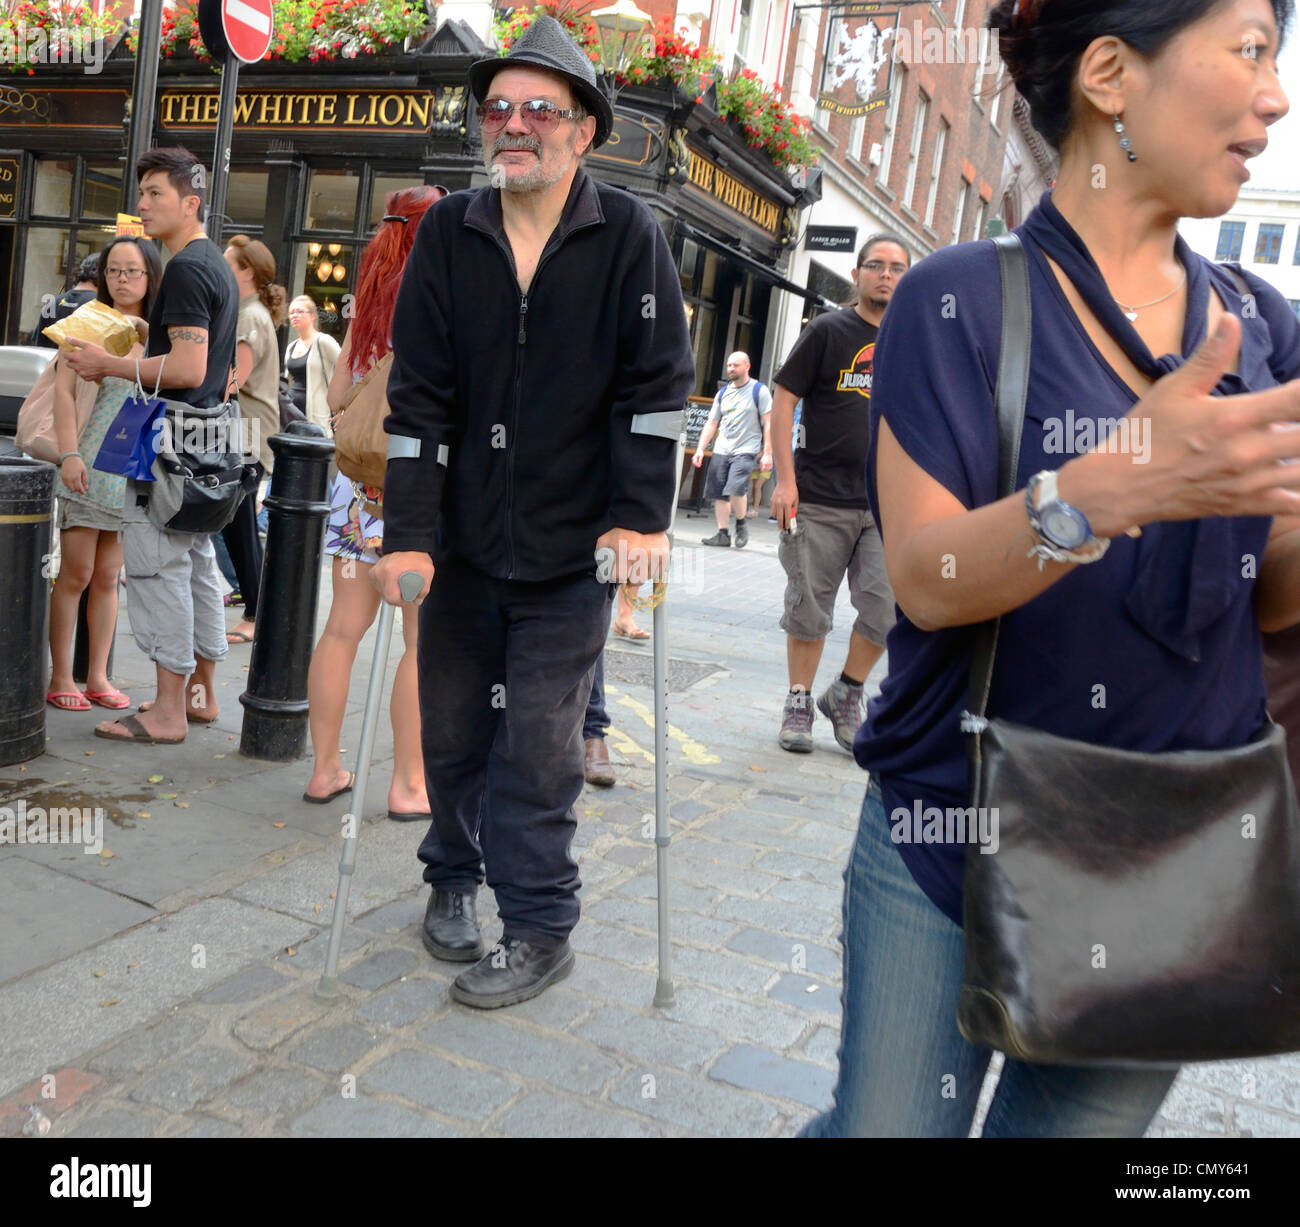 London, England. Disabled man on crutches - Stock Image